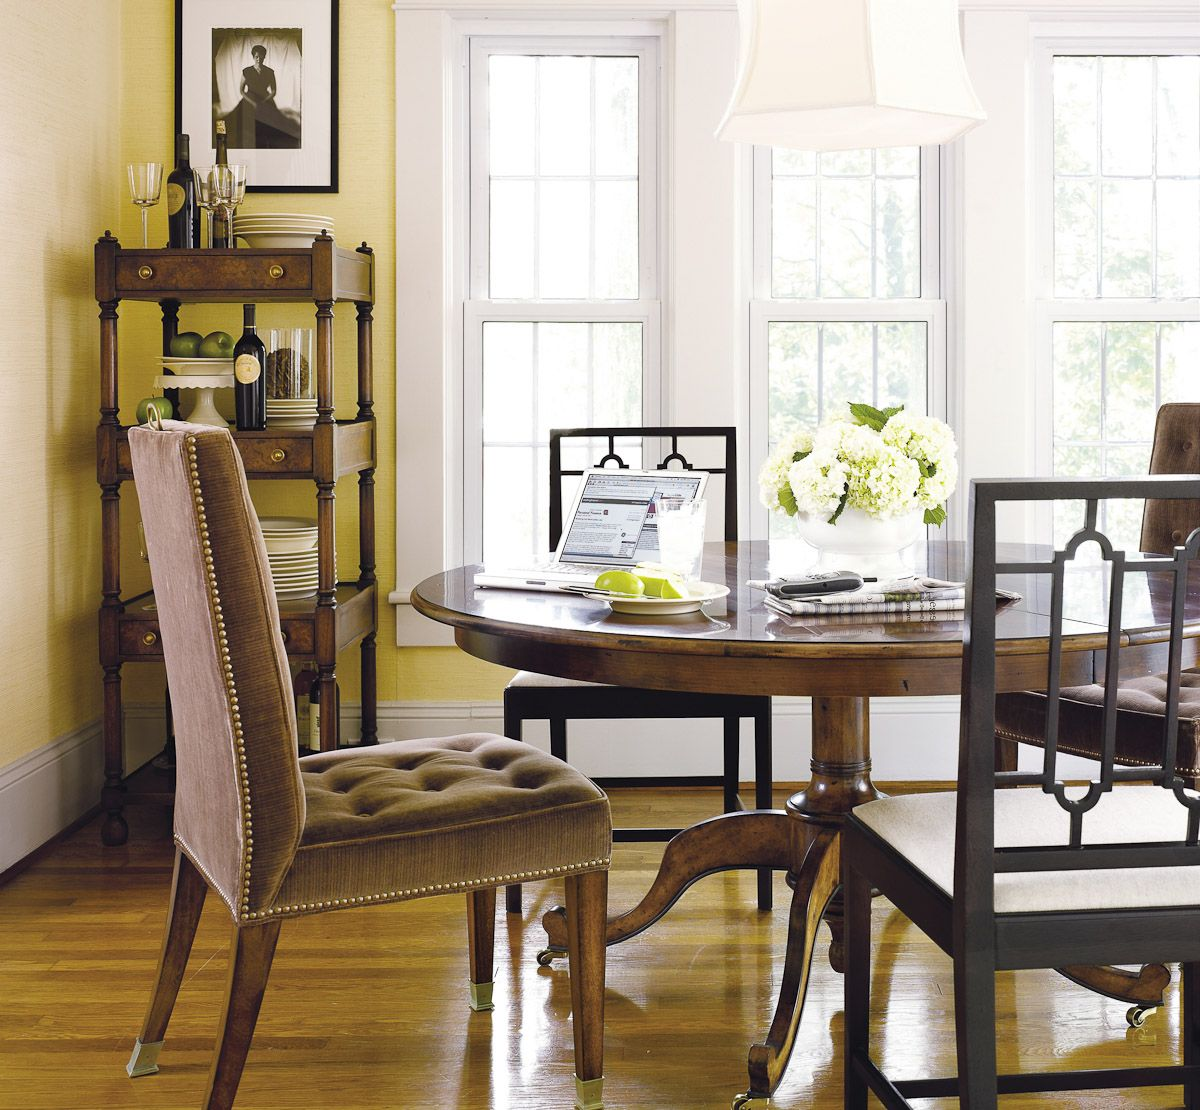 Hickory Chair Kimball Table Dining room furniture